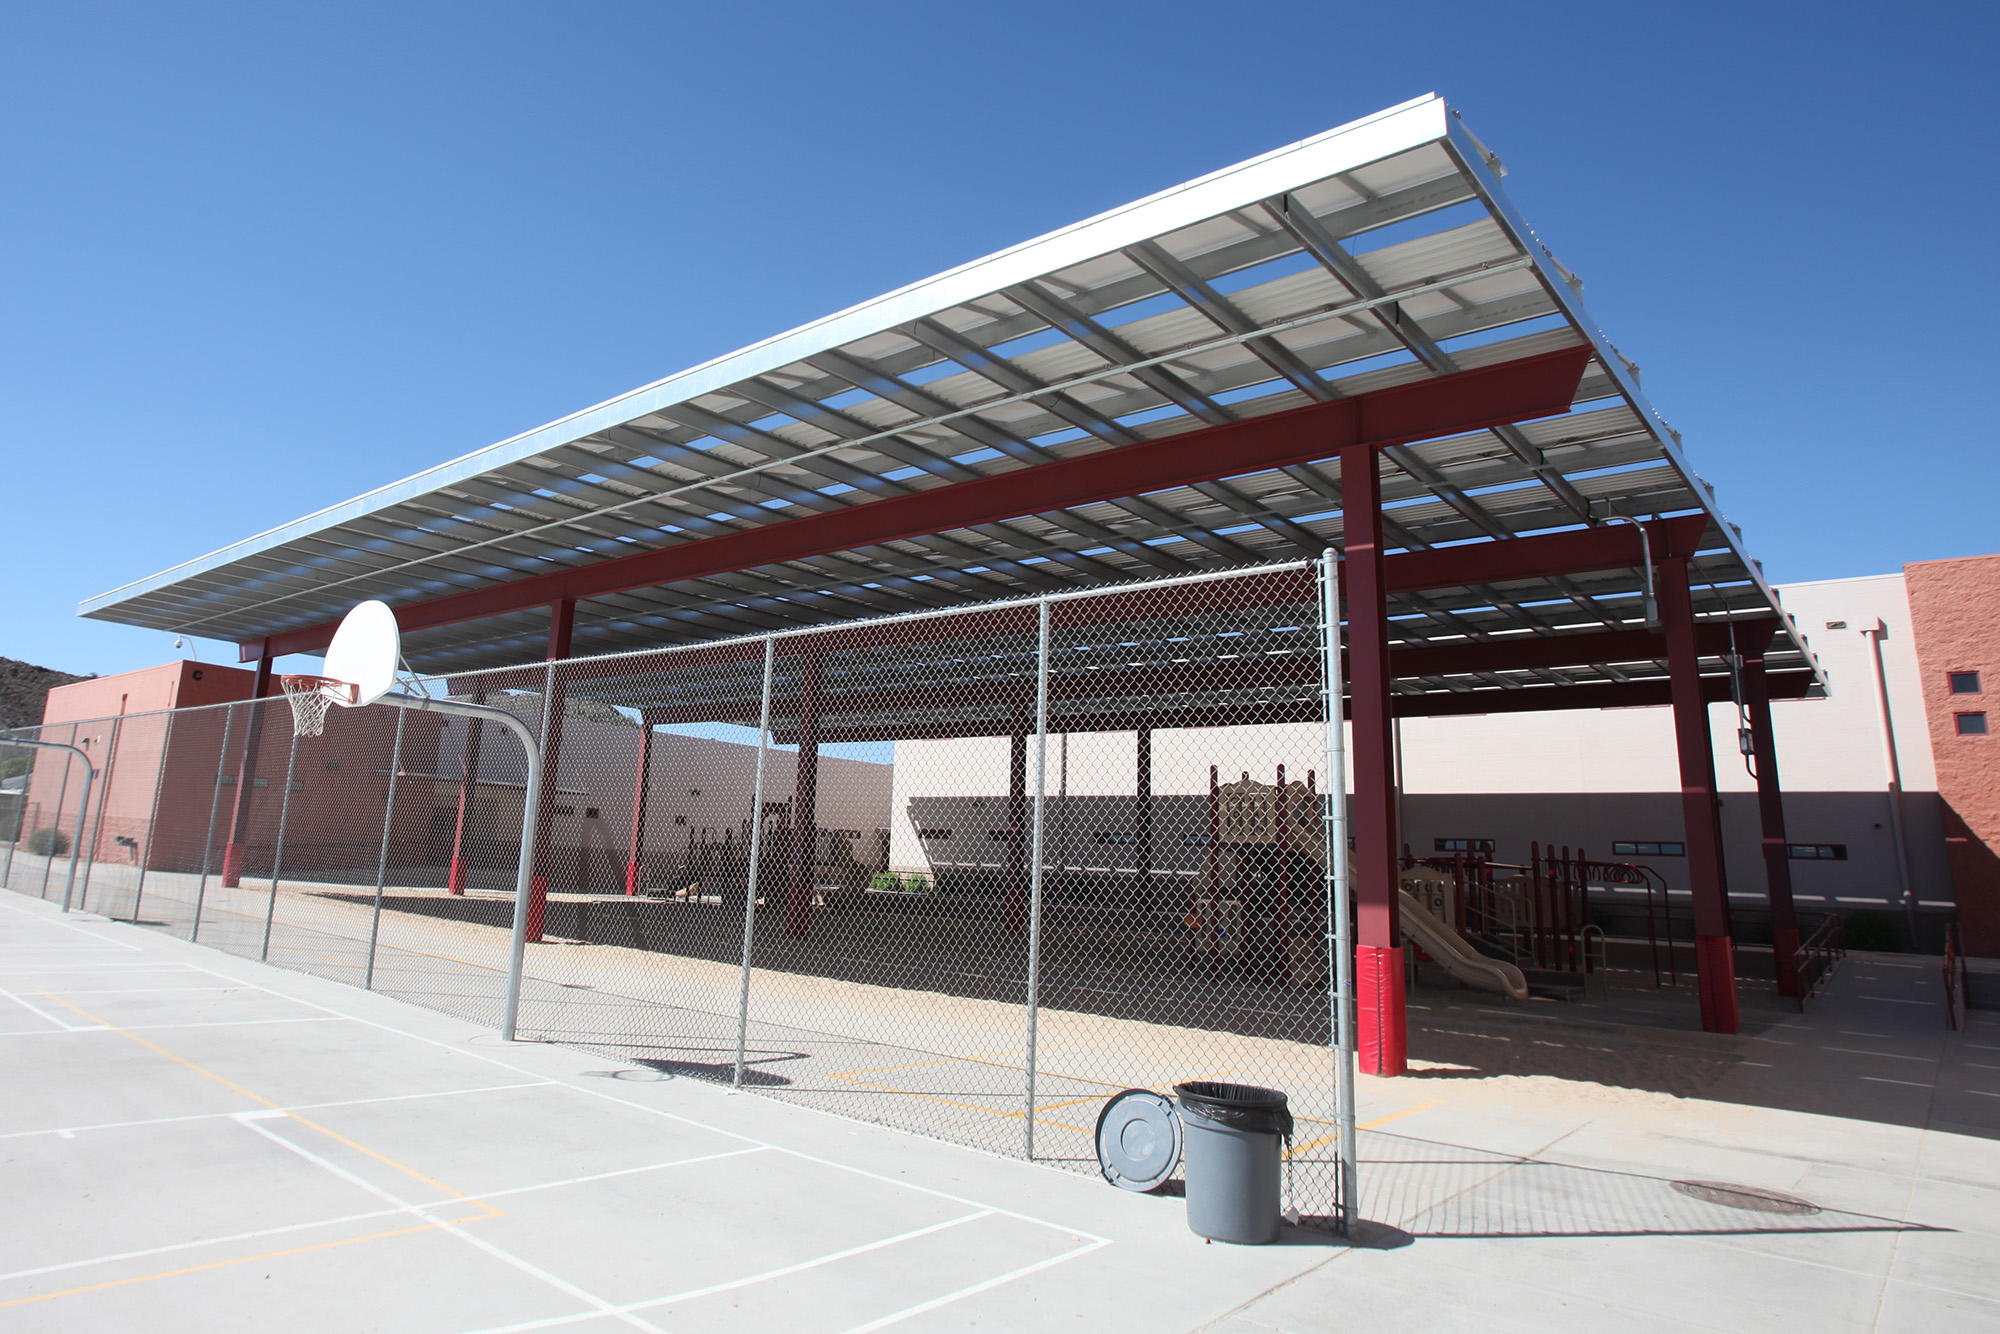 Incentive Program Enables Hundreds Of Schools To Go Solar Arizona Capitol Times